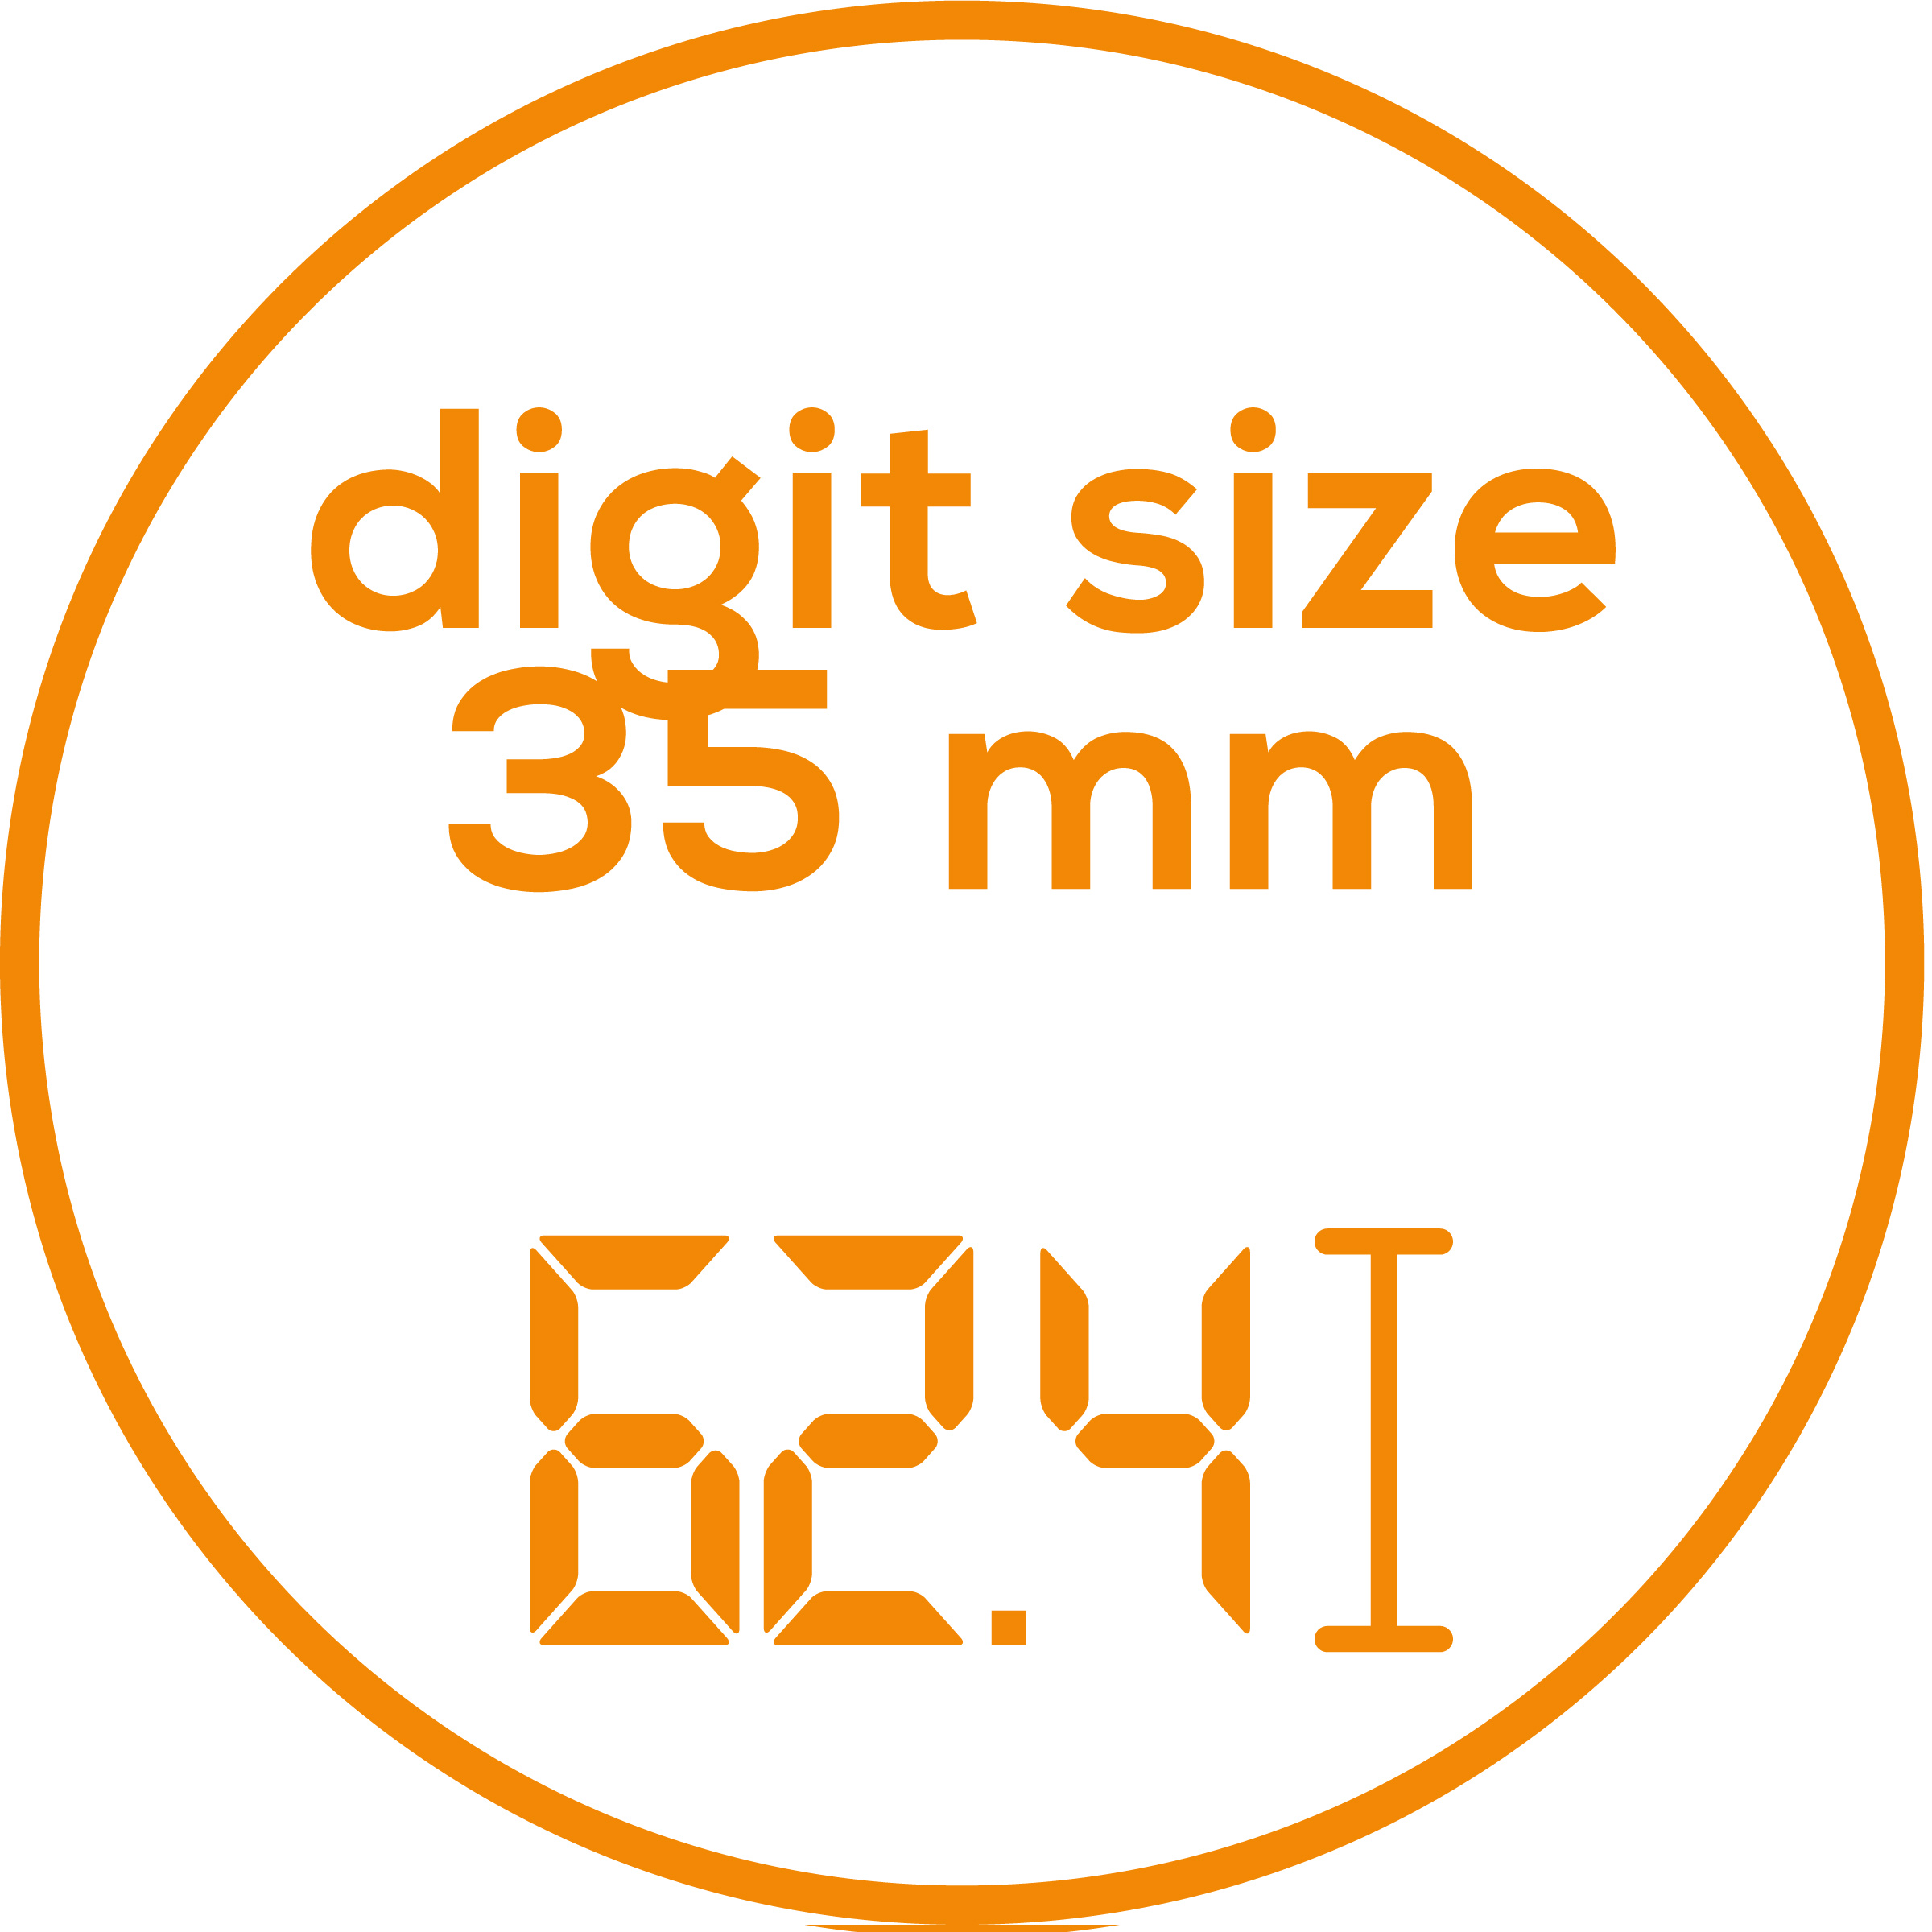 Digit size Digit size: 35 mm